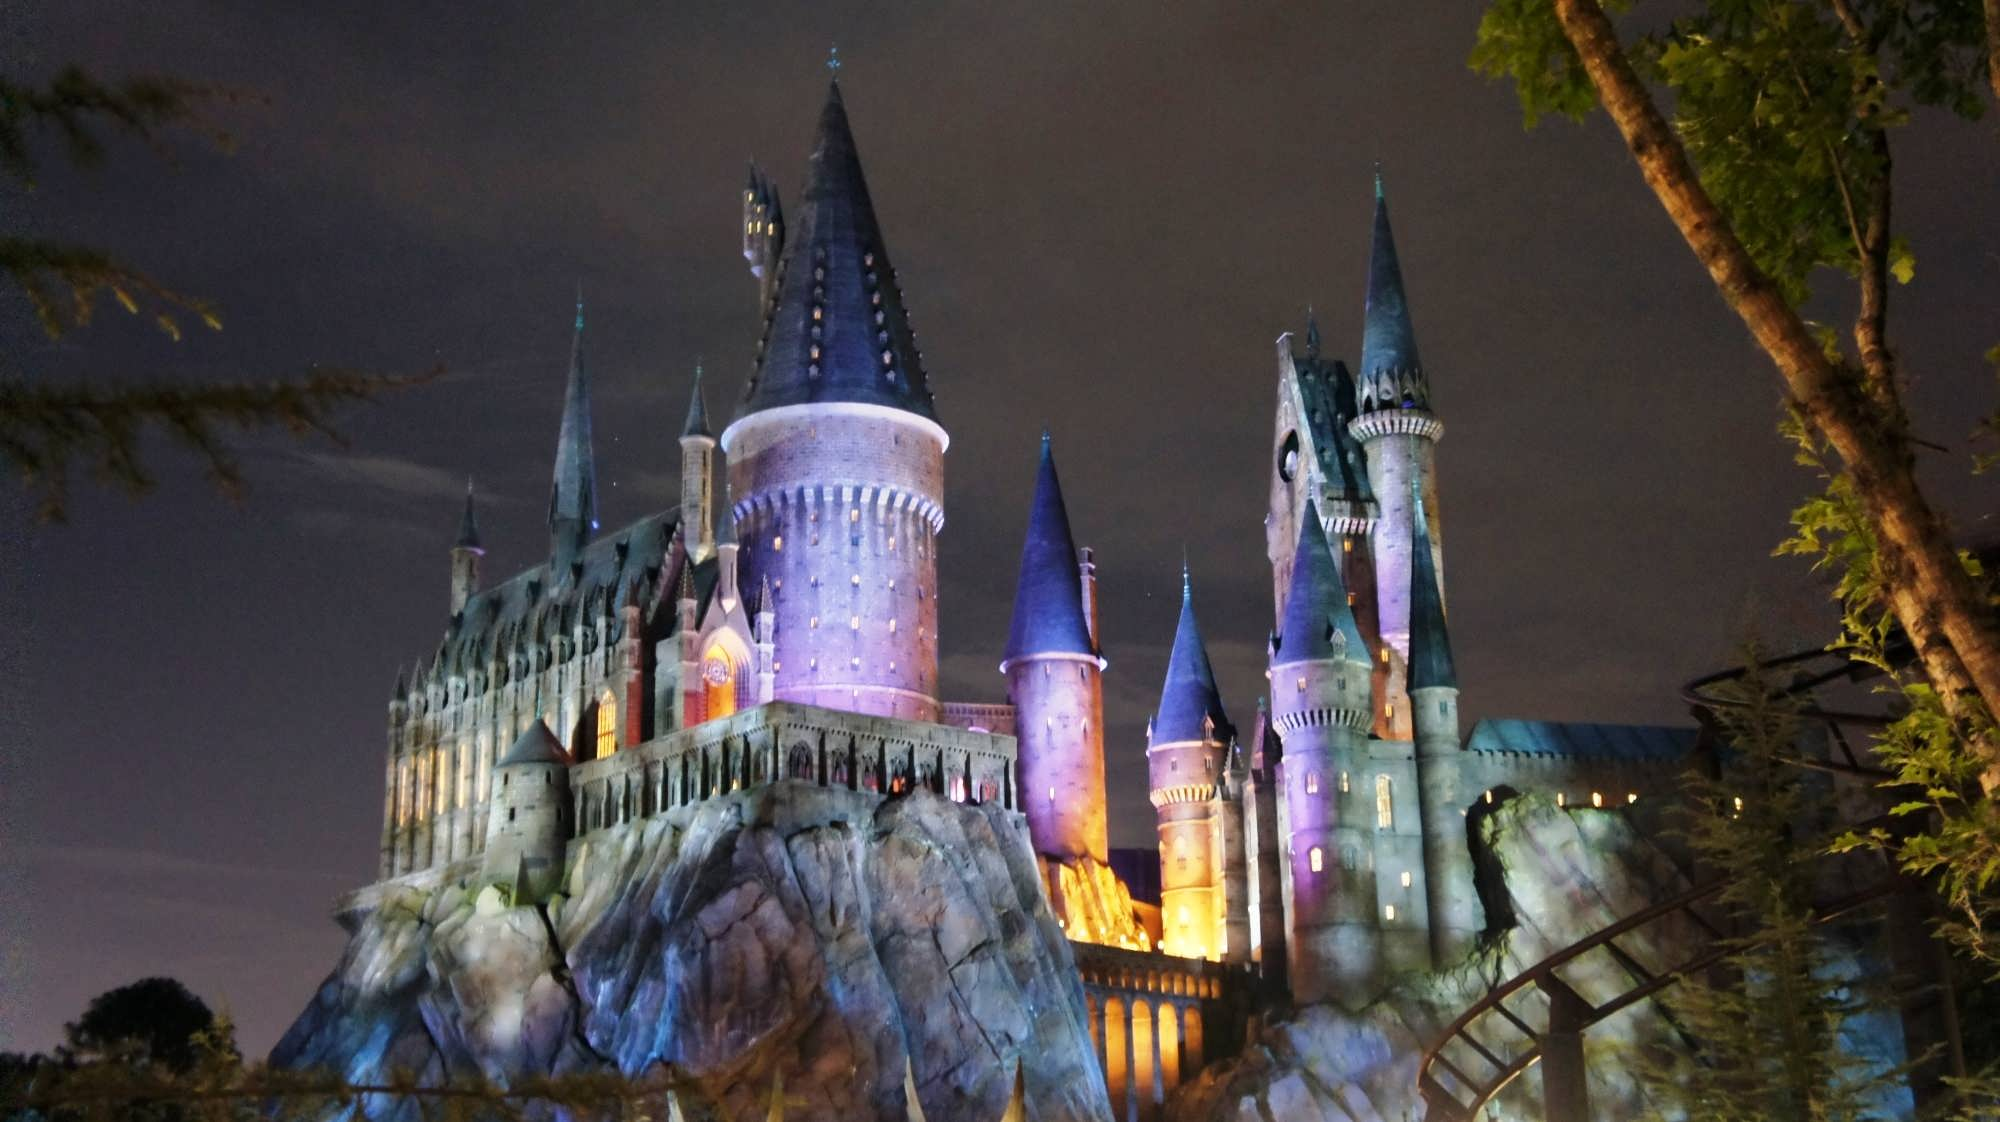 Universal S Wizarding World Of Harry Potter At Night